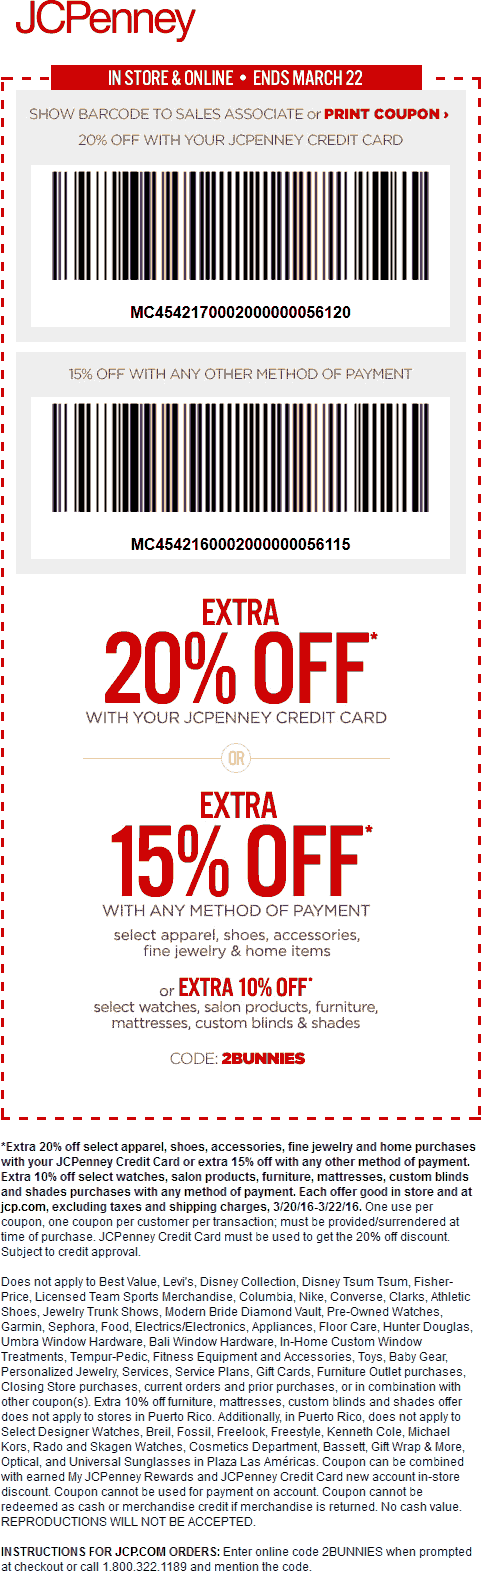 JCPenney Coupon September 2018 15% off at JCPenney, or online via promo code 2BUNNIES